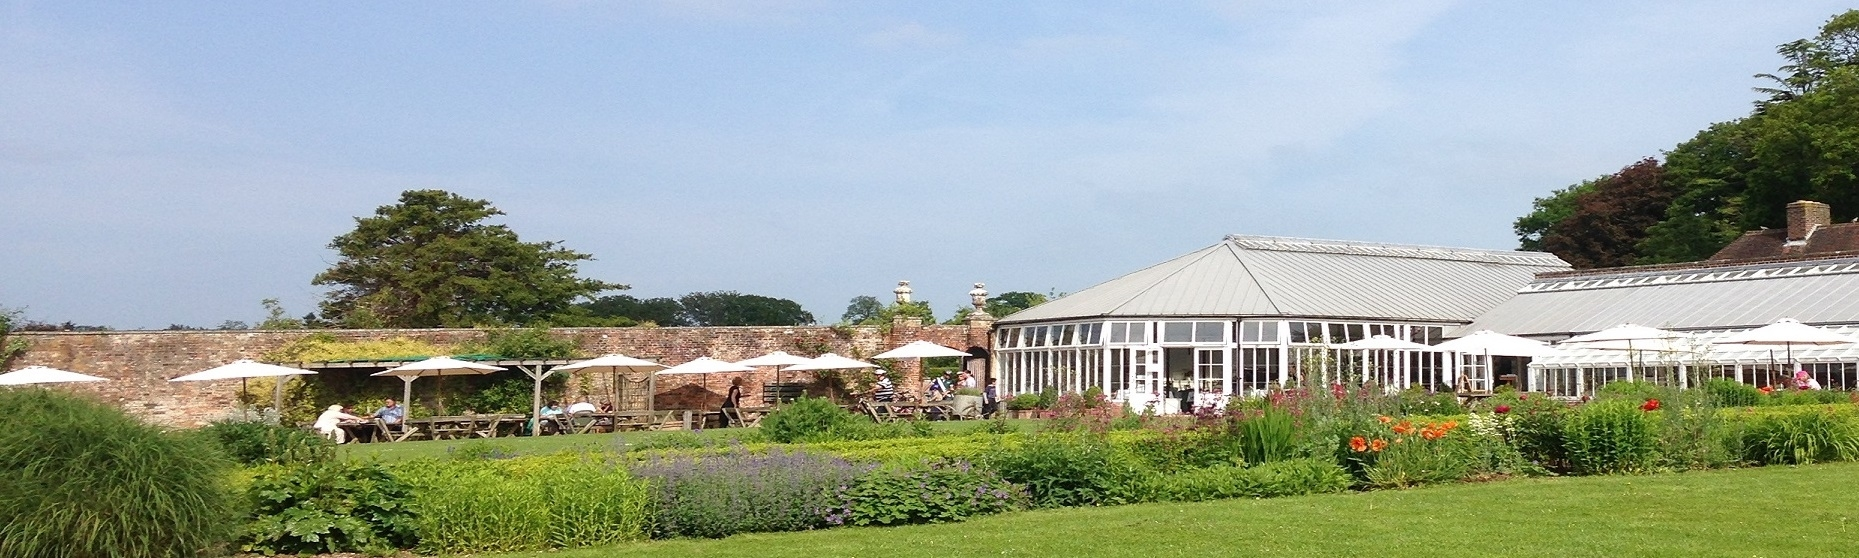 The Pavilion Tearooms Serve Breakfast, Lunch And Afternoon Tea Using inside Stansted House Garden Centre Cafe